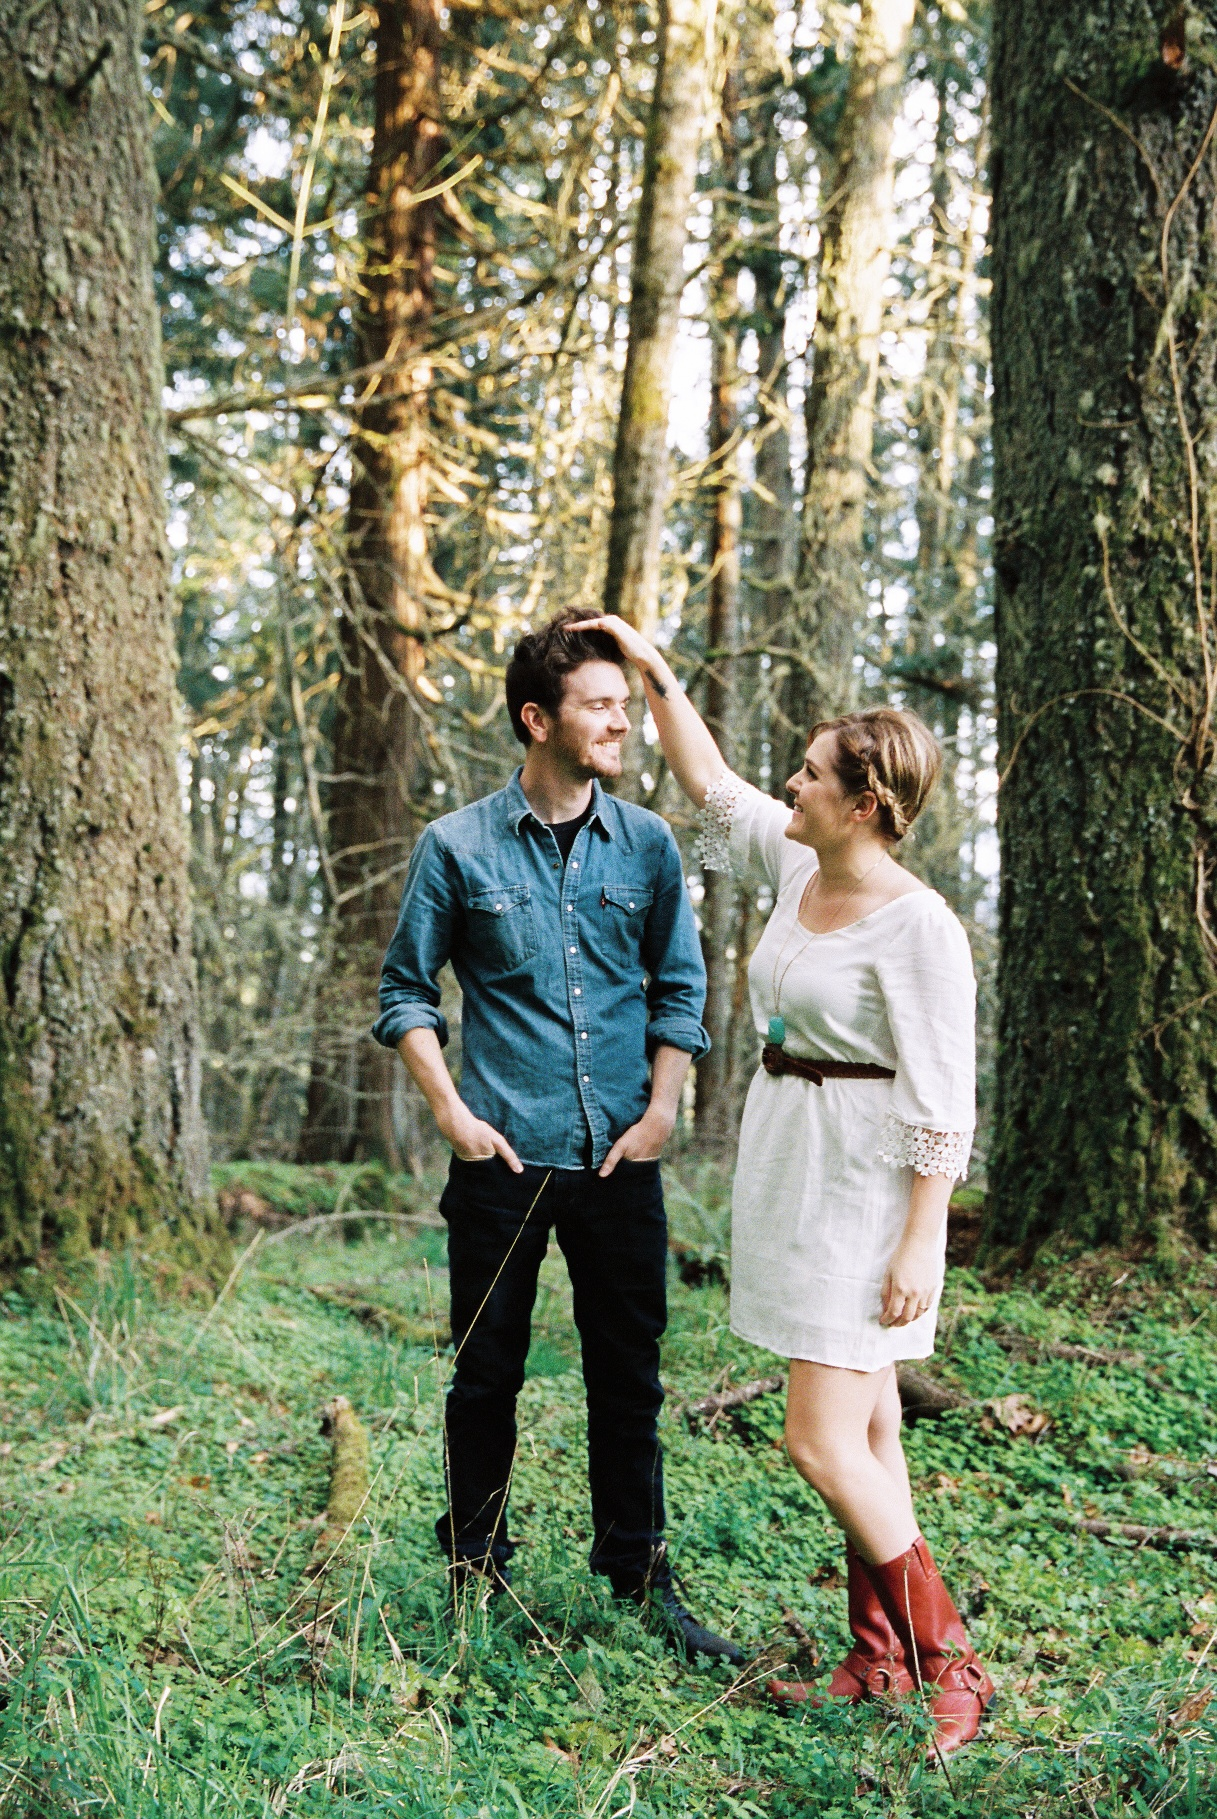 seattle wedding photographer engagement photo photos eugene oregon spenders butte woods trees grass light sunlight sun film photographer